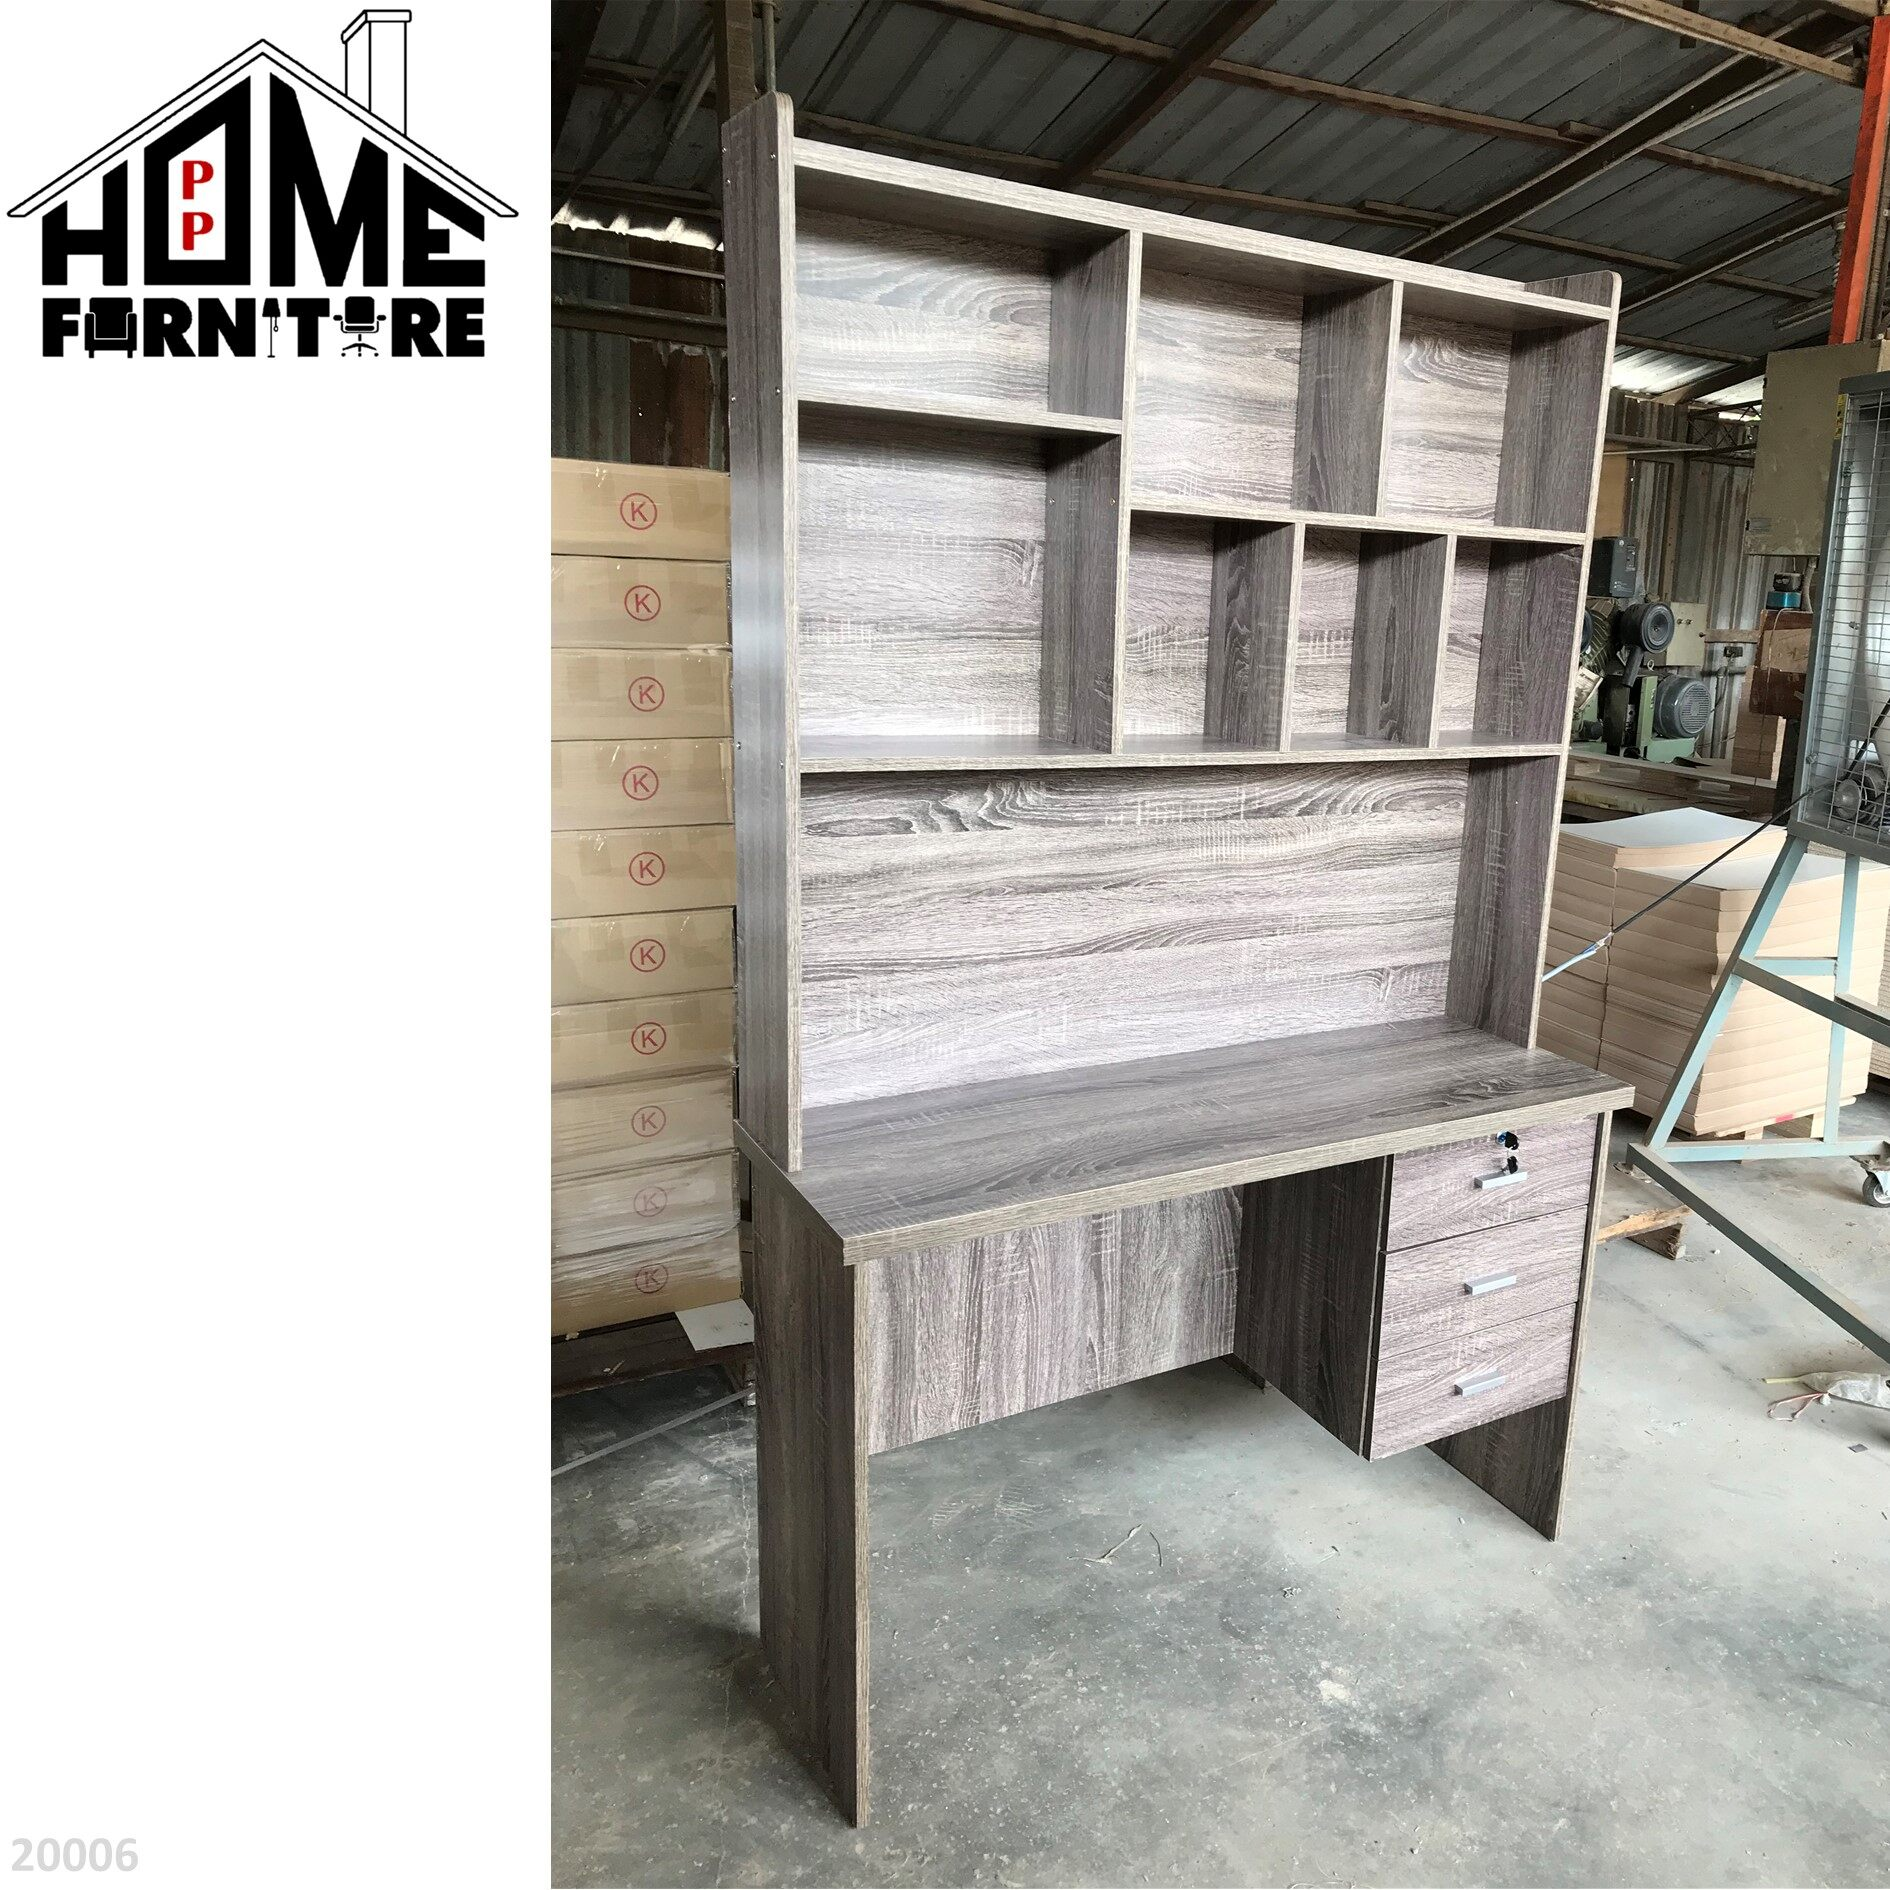 PP HOME Study Table with shelf & locker drawer/Writing table/Working table /PC table/ Student table/Home office table/Multipurpose table/Desk/Computer table/Destop/laptop/Meja belajar/Meja tulis/Meja kerja/komputer电脑桌/书桌/工作桌/读书桌/办公桌20006 1/2